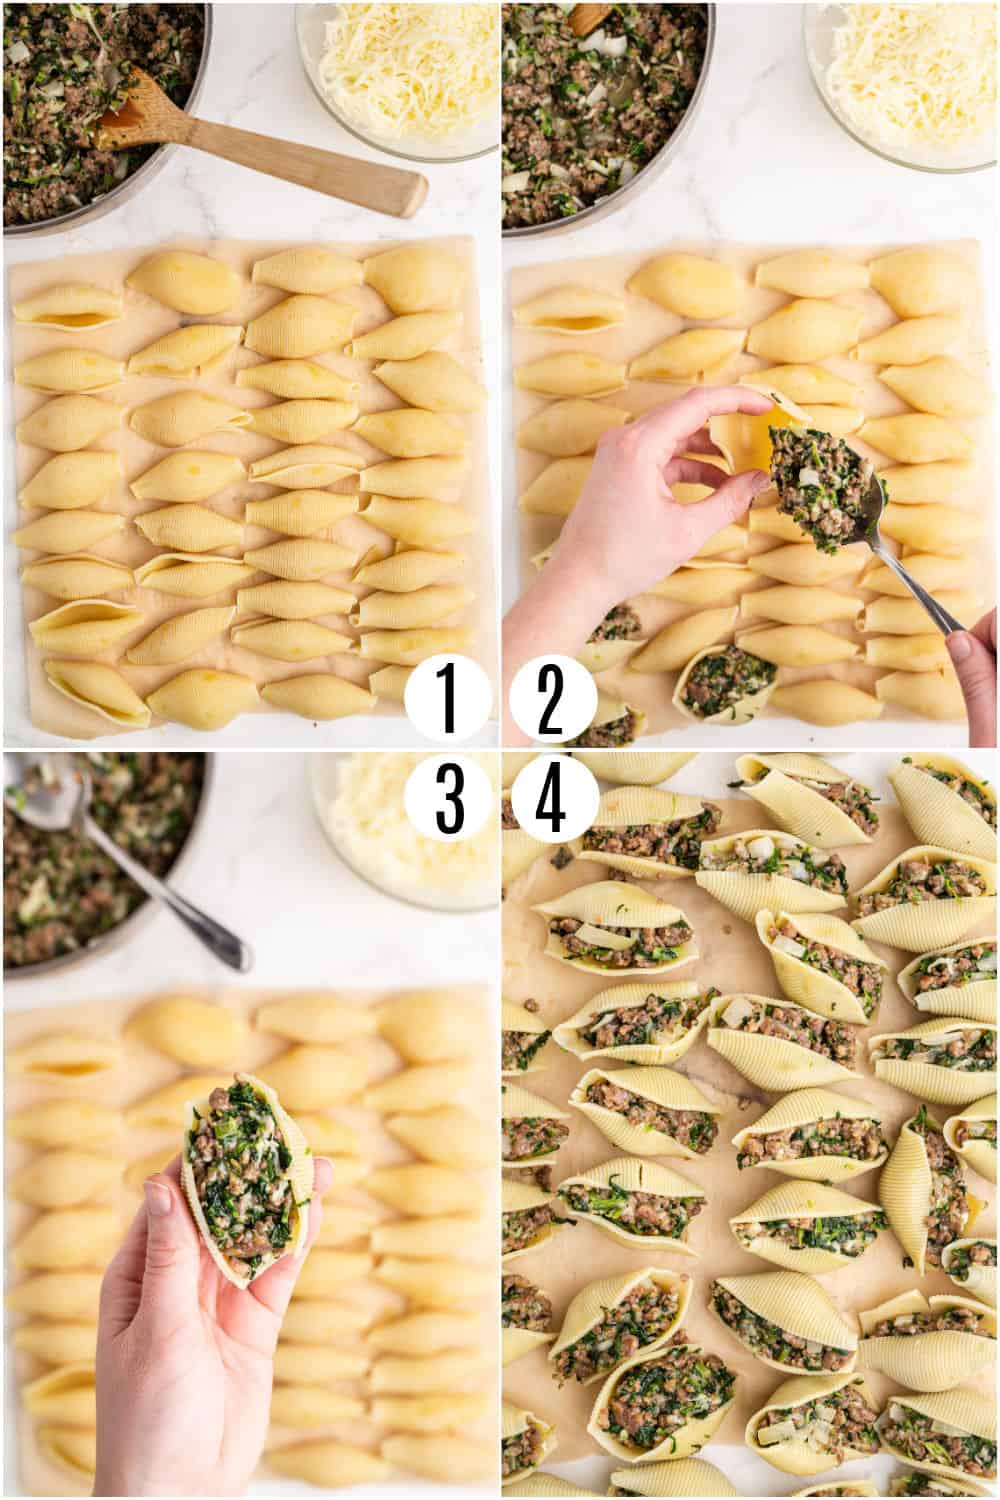 Step by step photos showing how to stuff pasta shells.